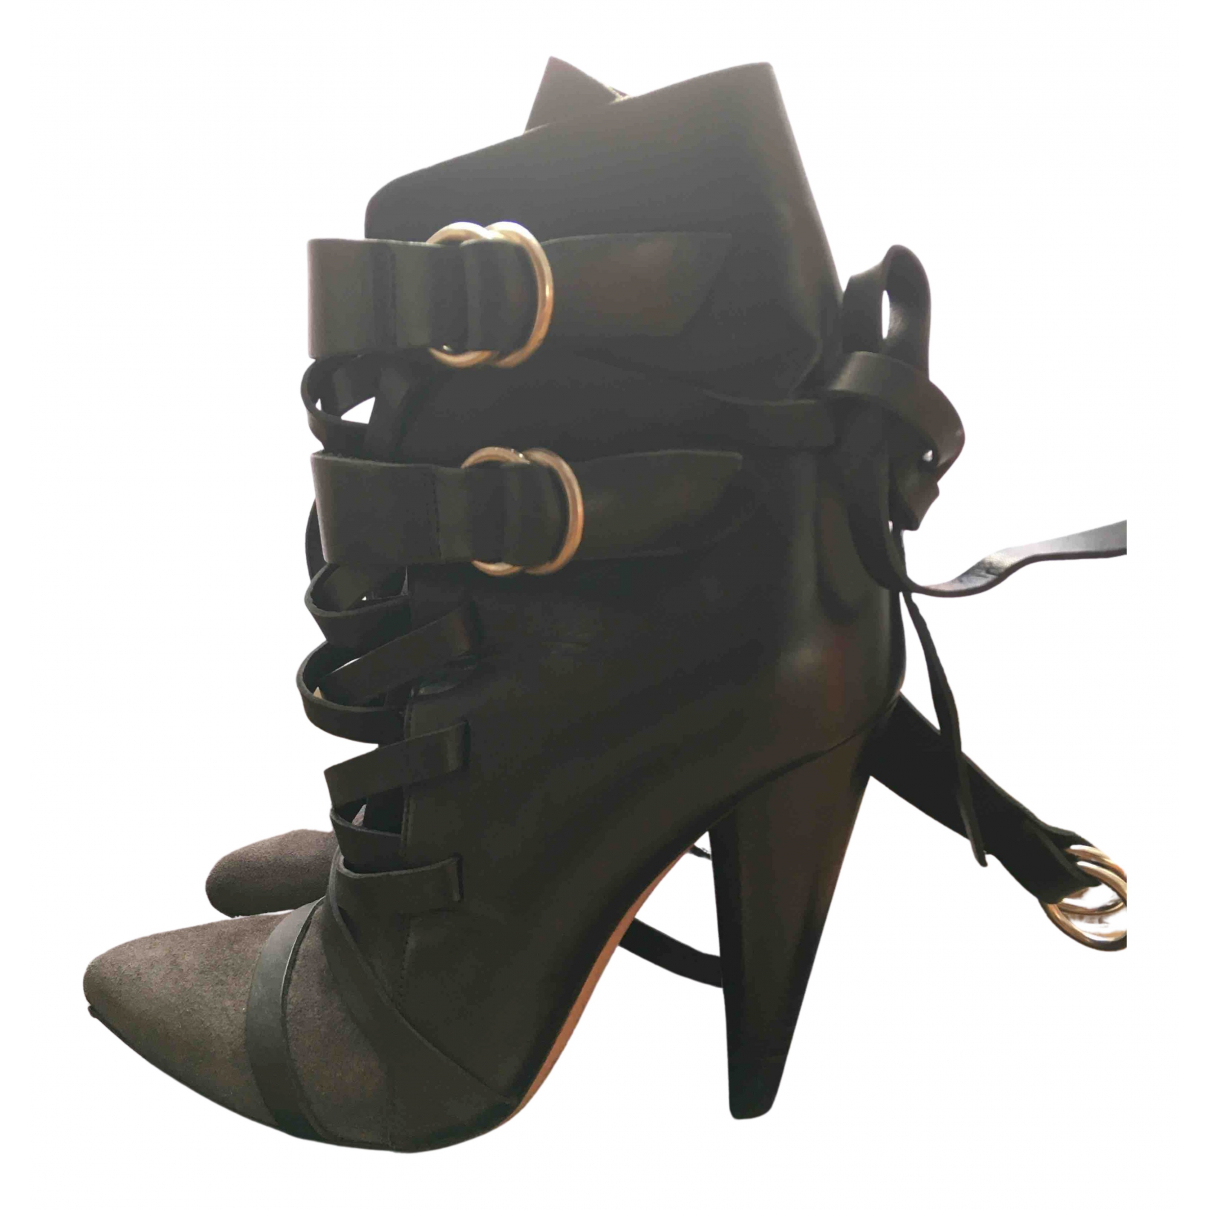 Isabel Marant N Black Suede Ankle boots for Women 38 EU